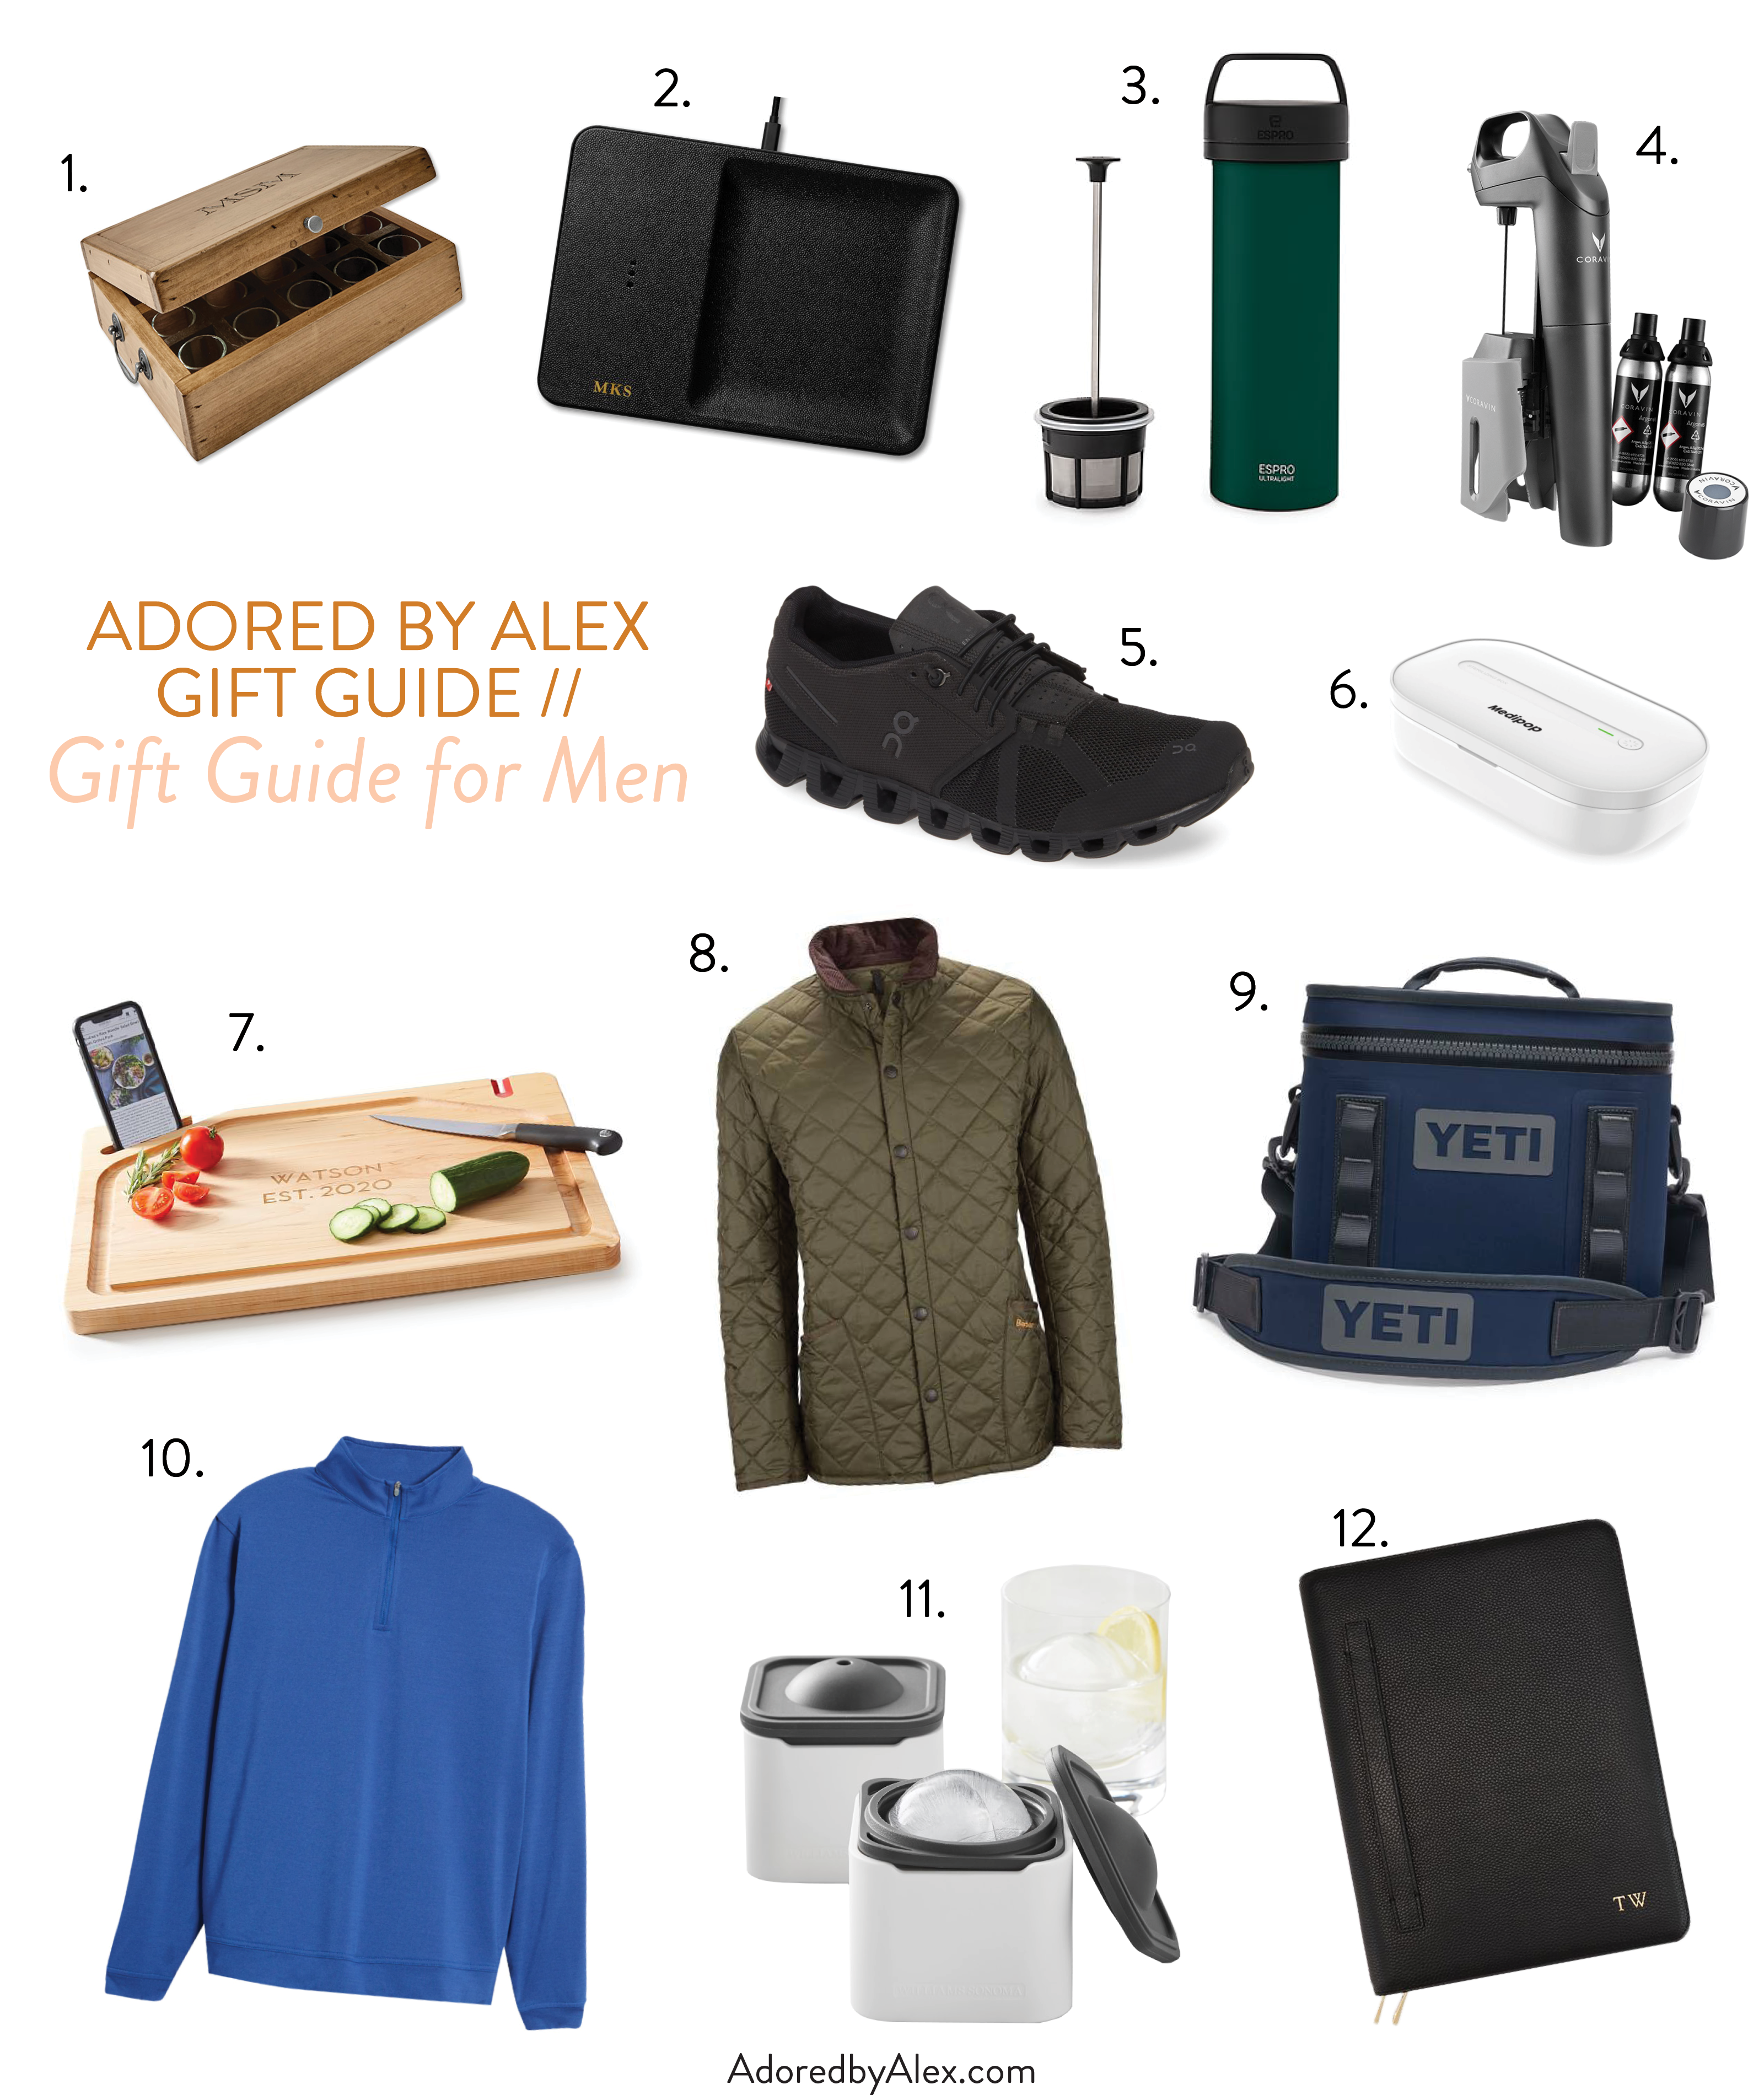 12 Gift Ideas for Him - Adored by Alex